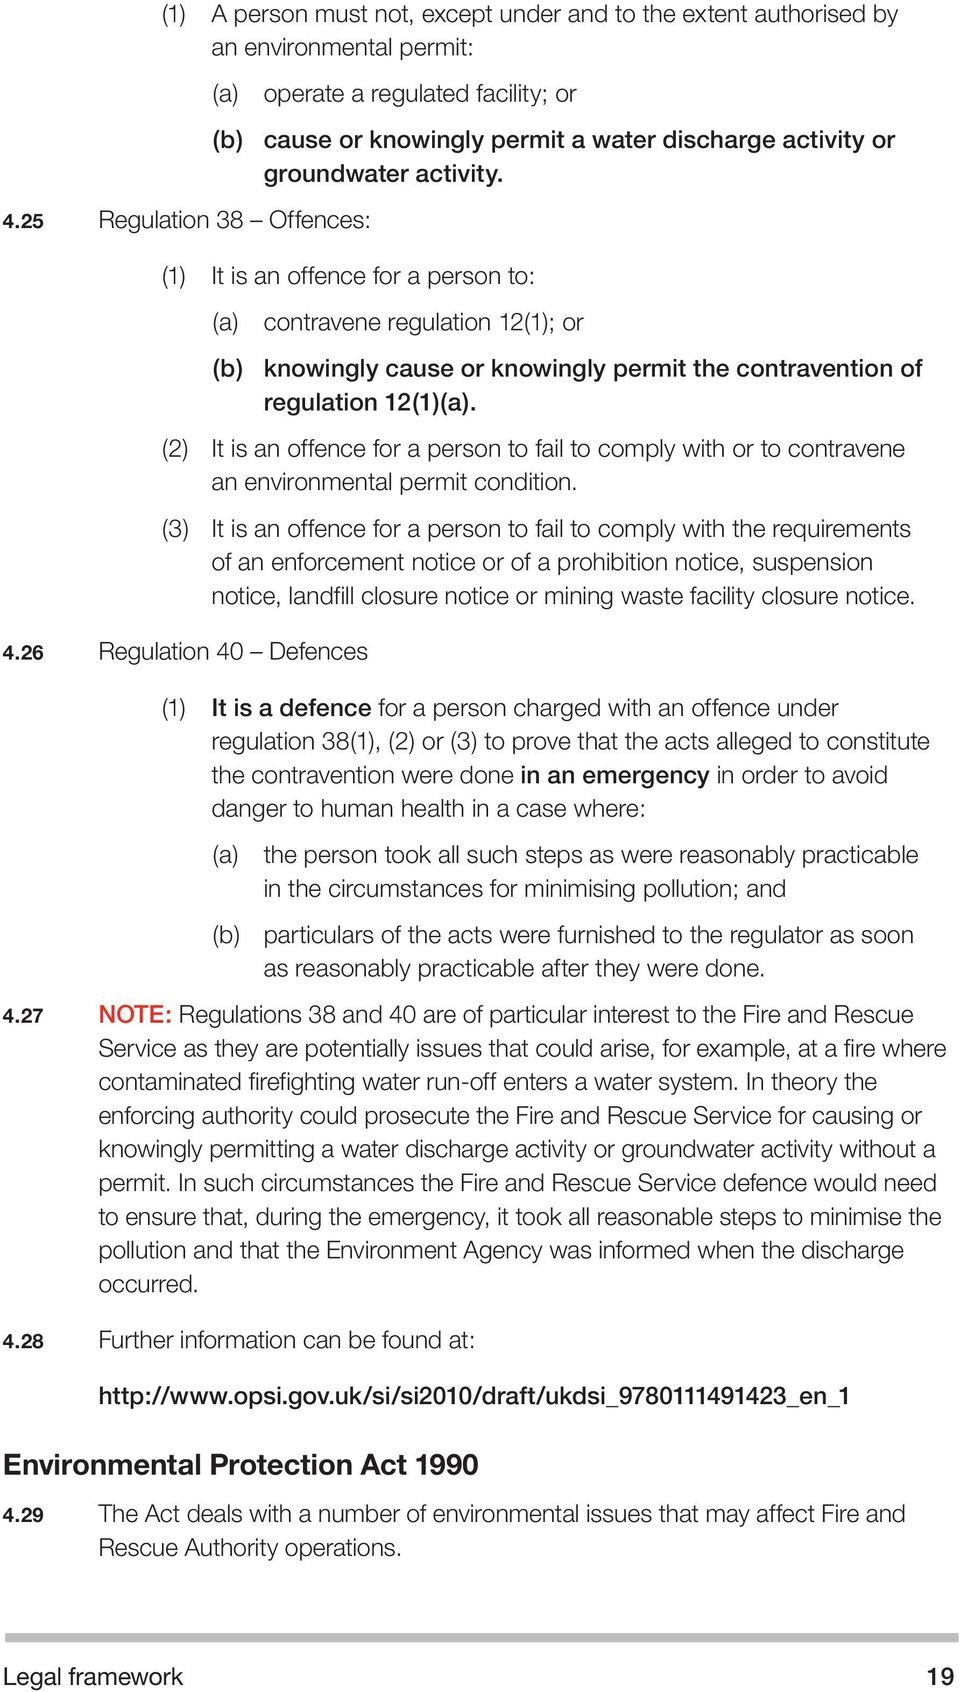 (1) It is an offence for a person to: (a) contravene regulation 12(1); or (b) knowingly cause or knowingly permit the contravention of regulation 12(1)(a).